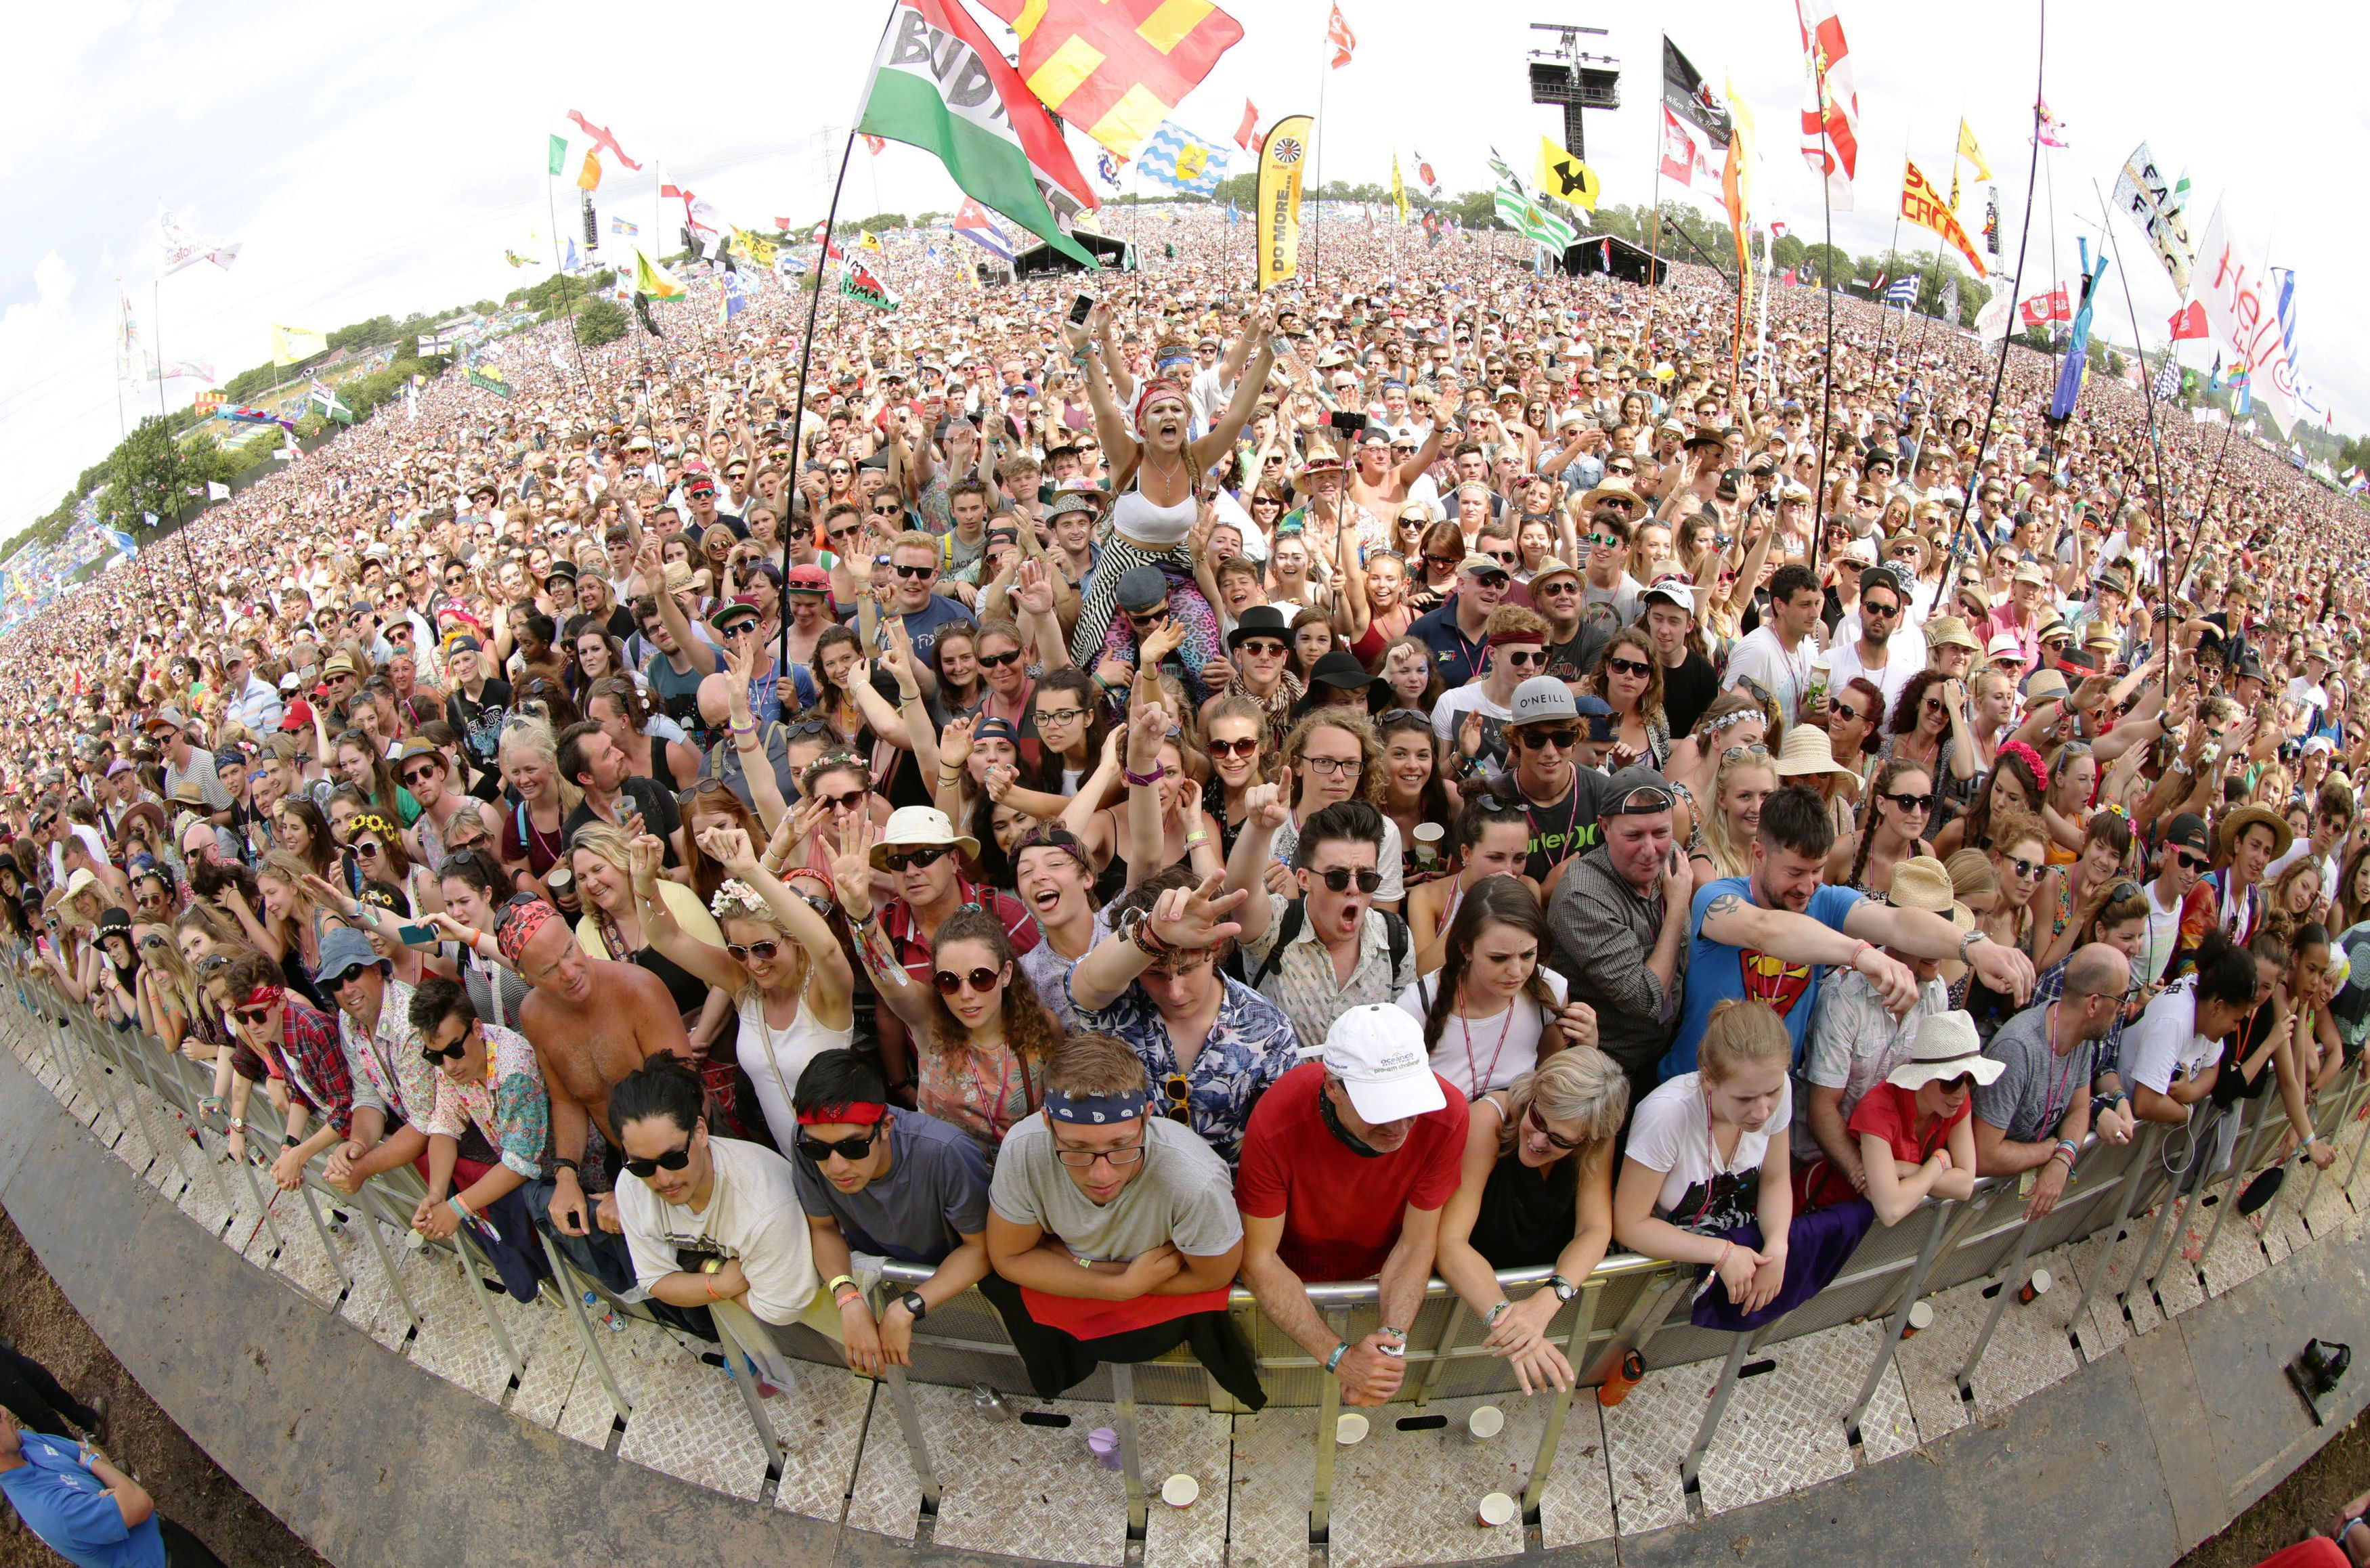 One In Five UK Festival-Goers Harassed Or Sexually Assaulted, Poll